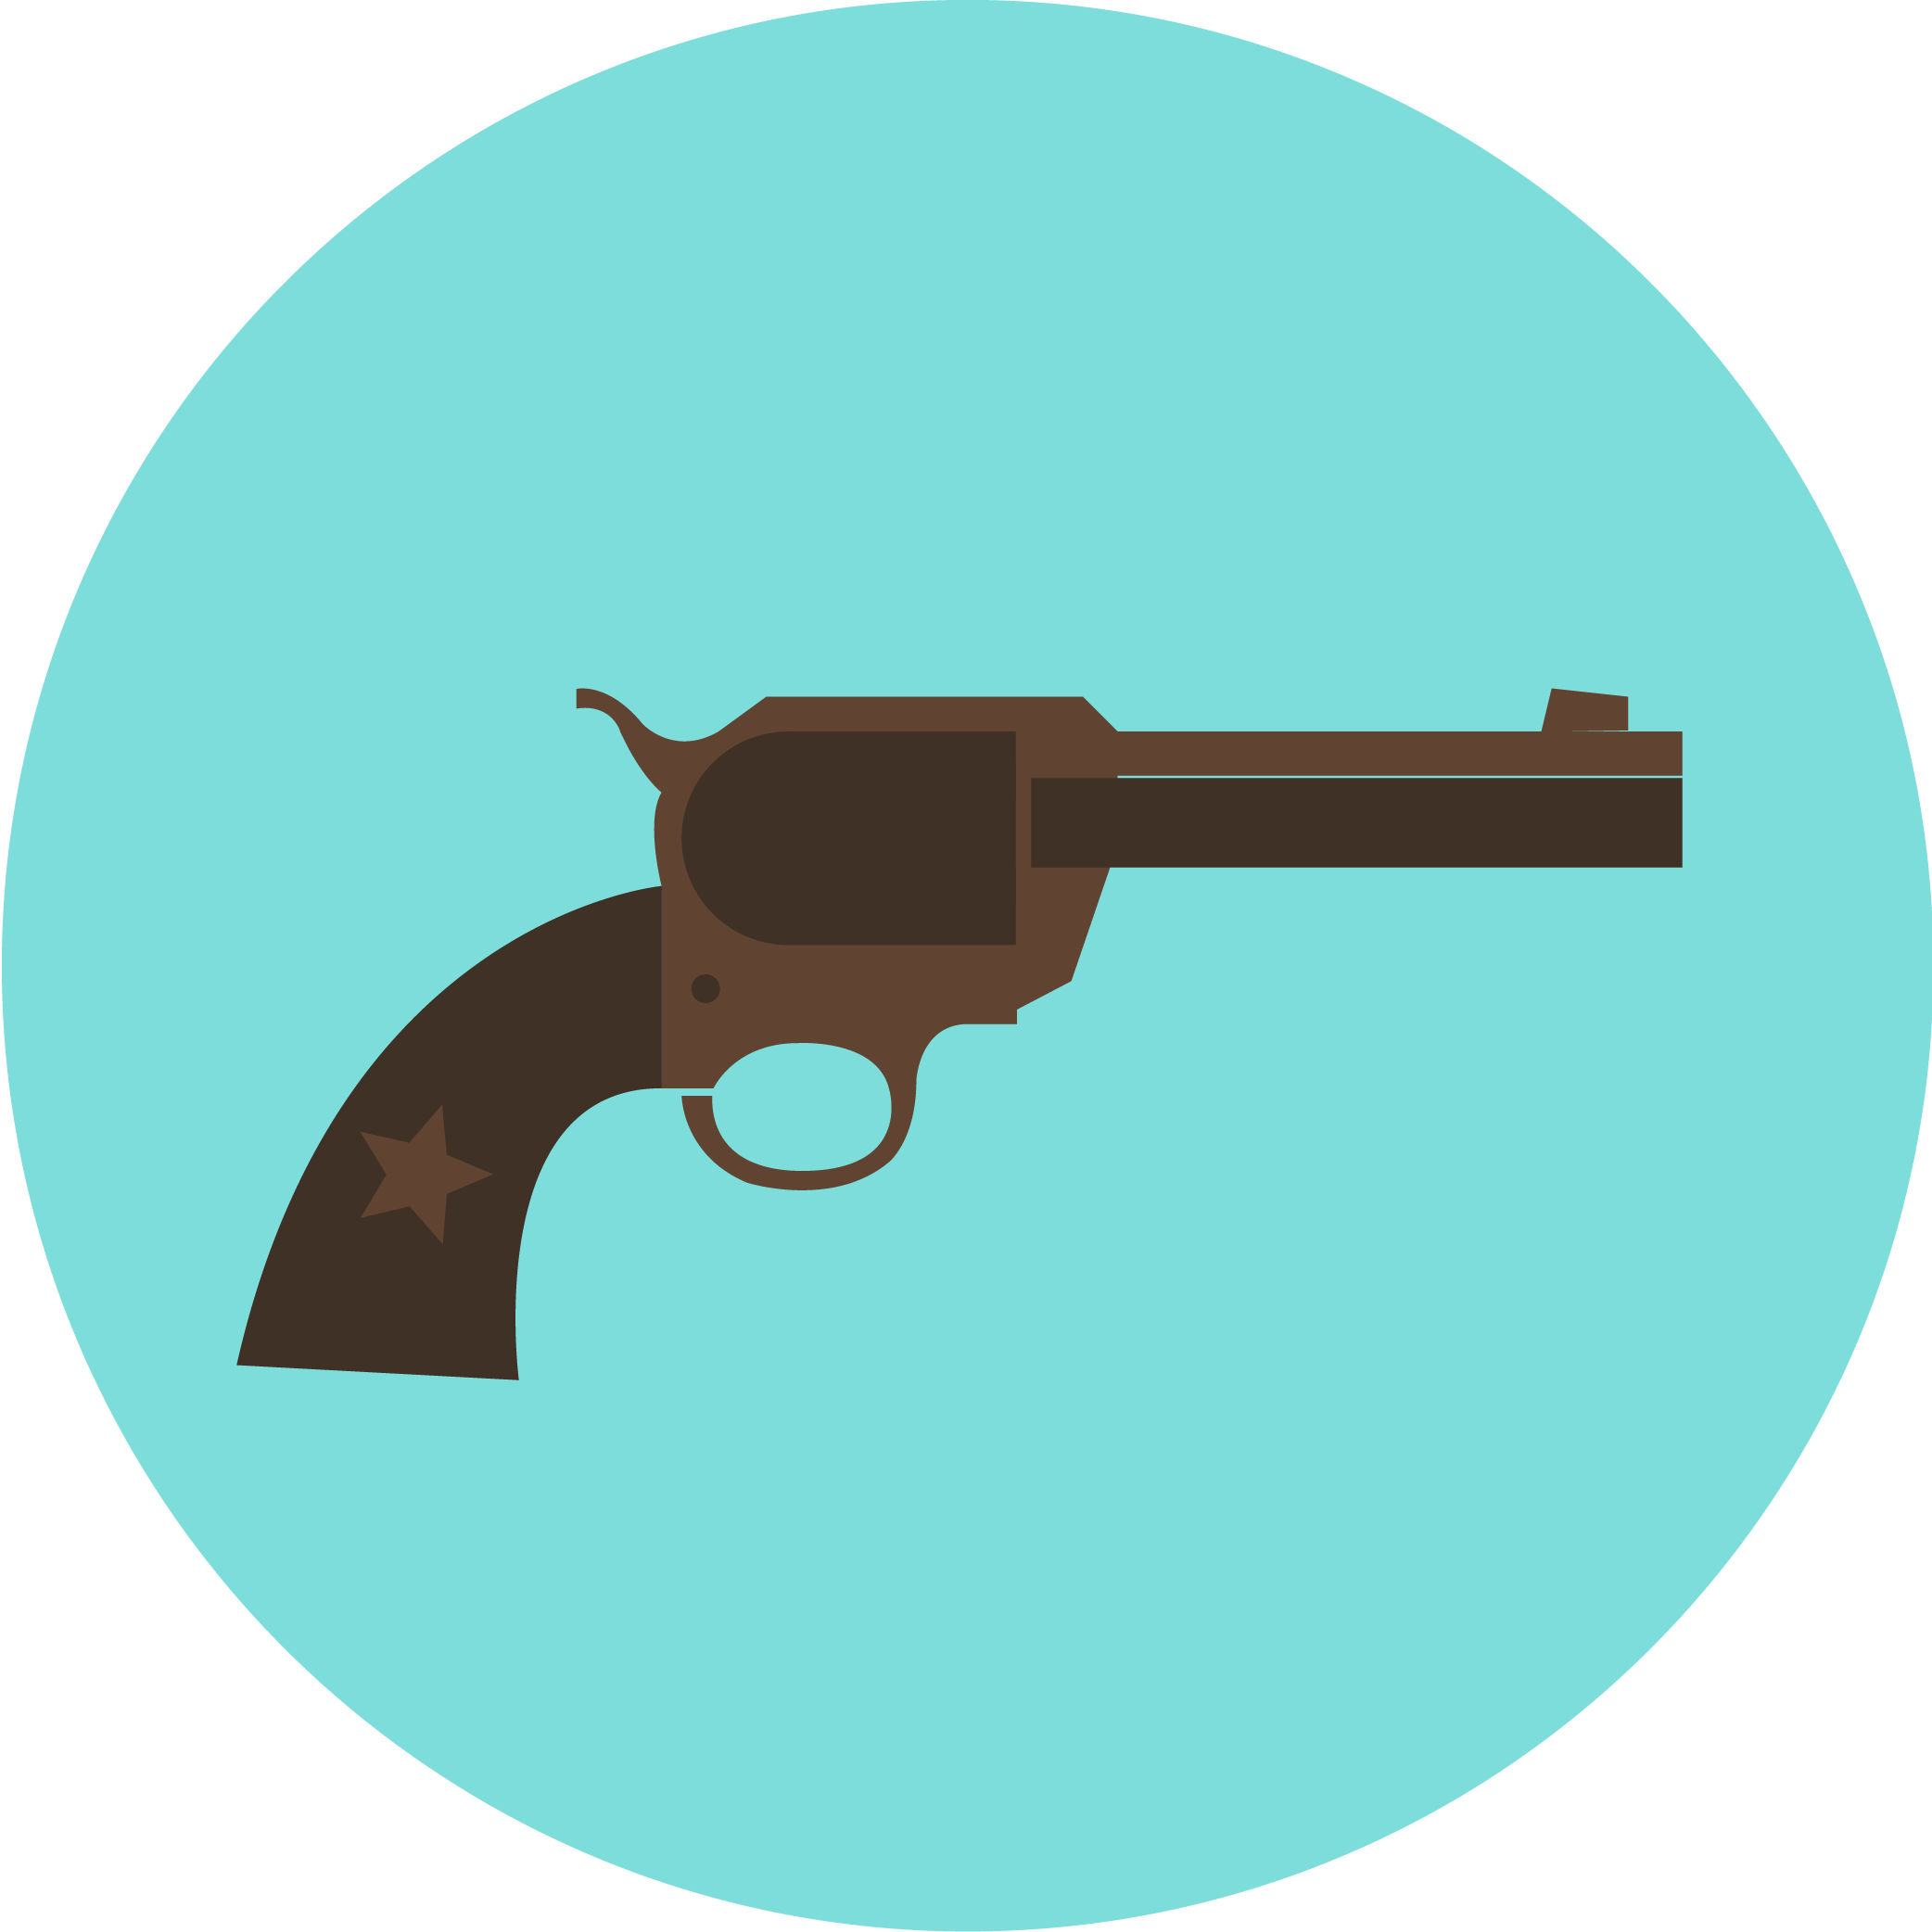 Clipart gun old fashioned. Seven day trips to